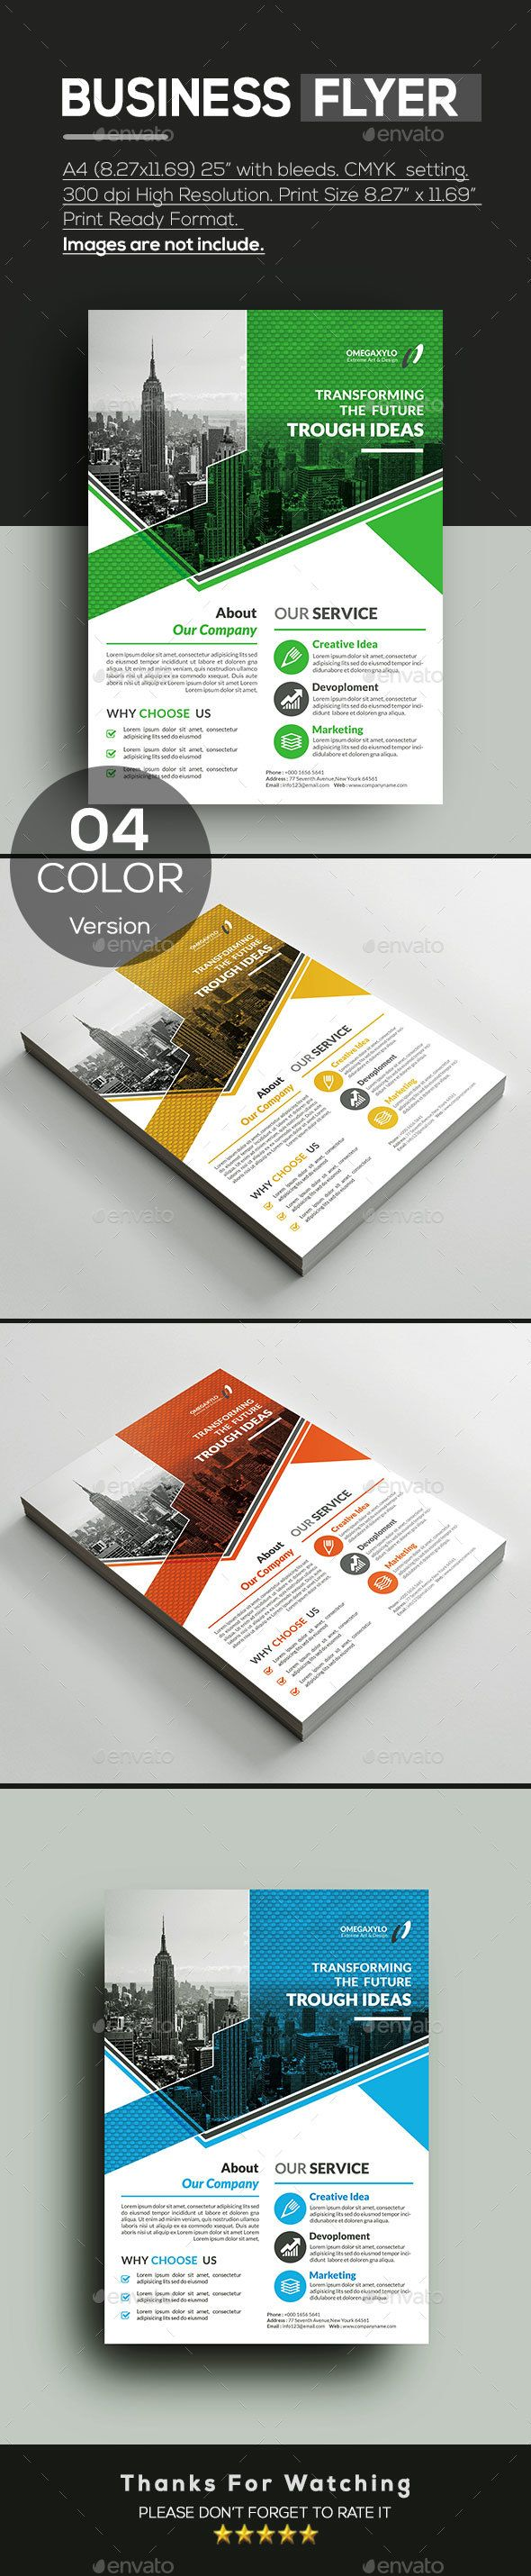 Business Flyer Corporate Flyers Business flyer